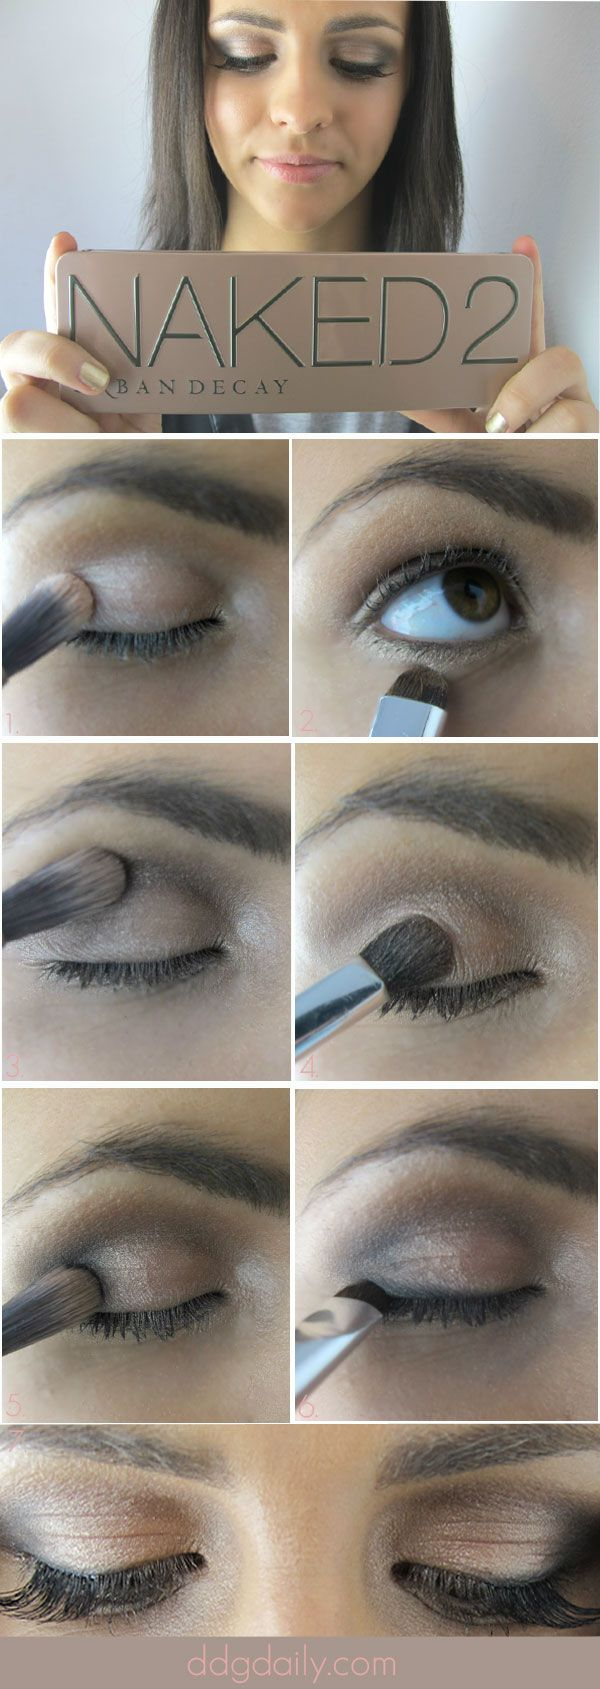 DDG DIY: Urban Decay Naked 2 Palette tutorial for a bronze smokey eye | how tos feature eye makeup and trends ddg diy beauty tips beauty 2 beauty 2 pictures